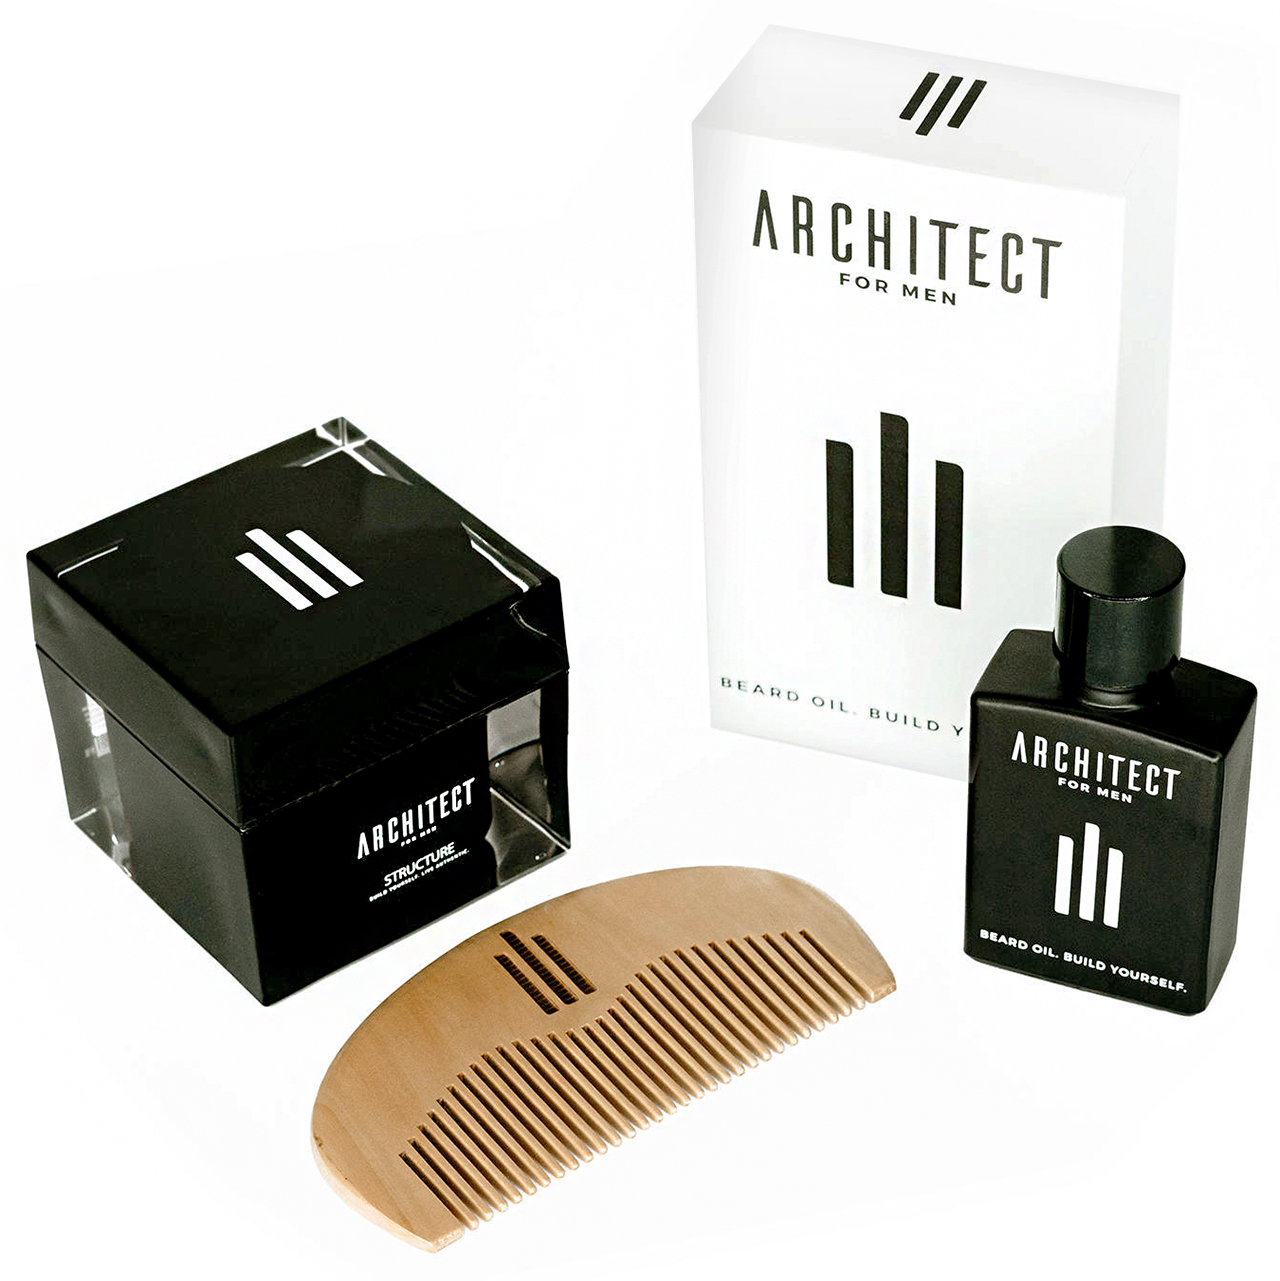 beard oil bundle by architect for men